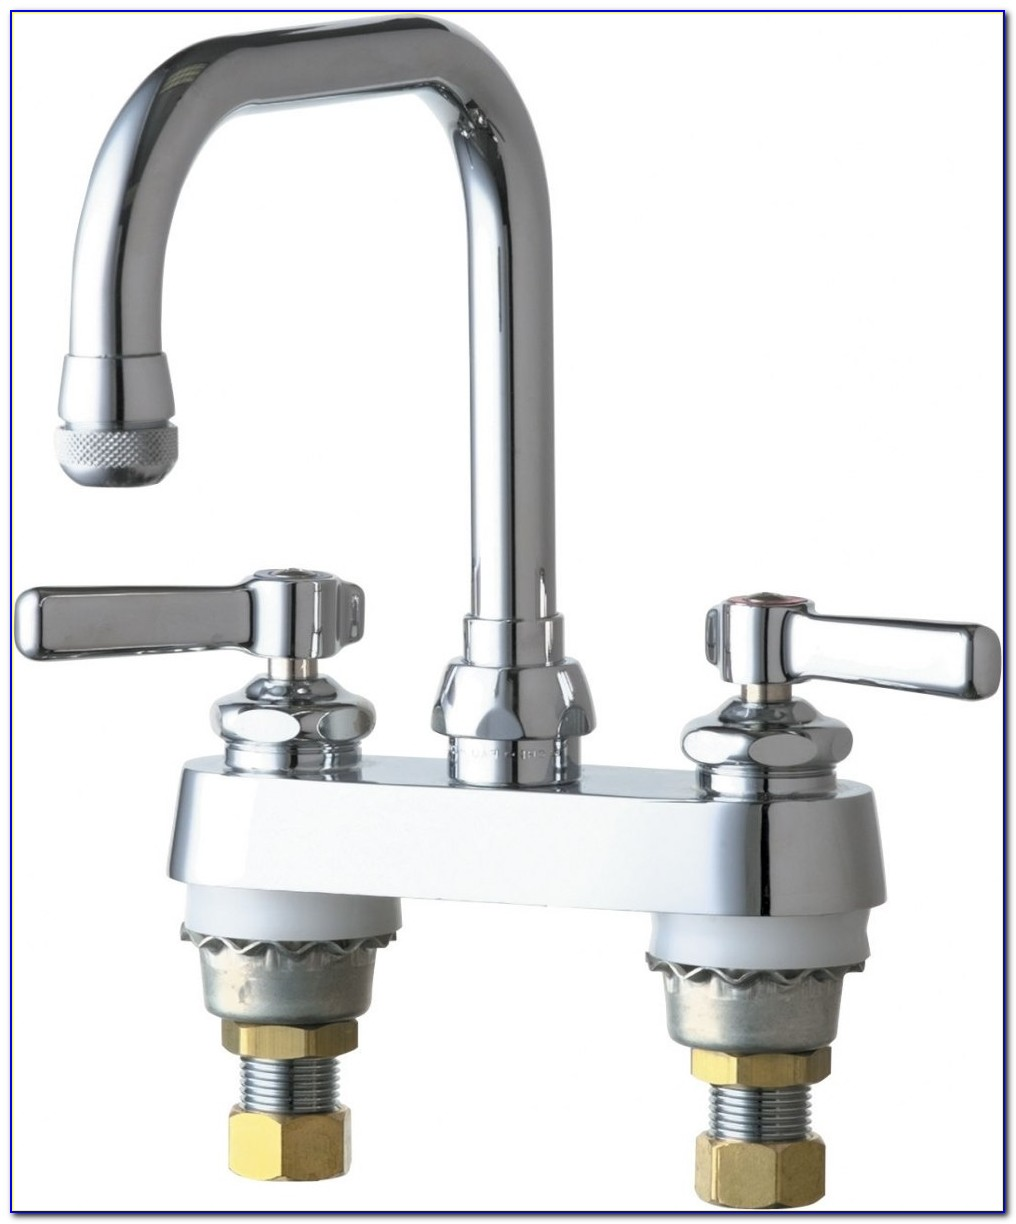 Delta Utility Sink Faucet With Sprayer Delta Utility Sink Faucet With Sprayer Laundry Sink Faucets At Faucet Delta Utility Sink Faucet 989 X 1197